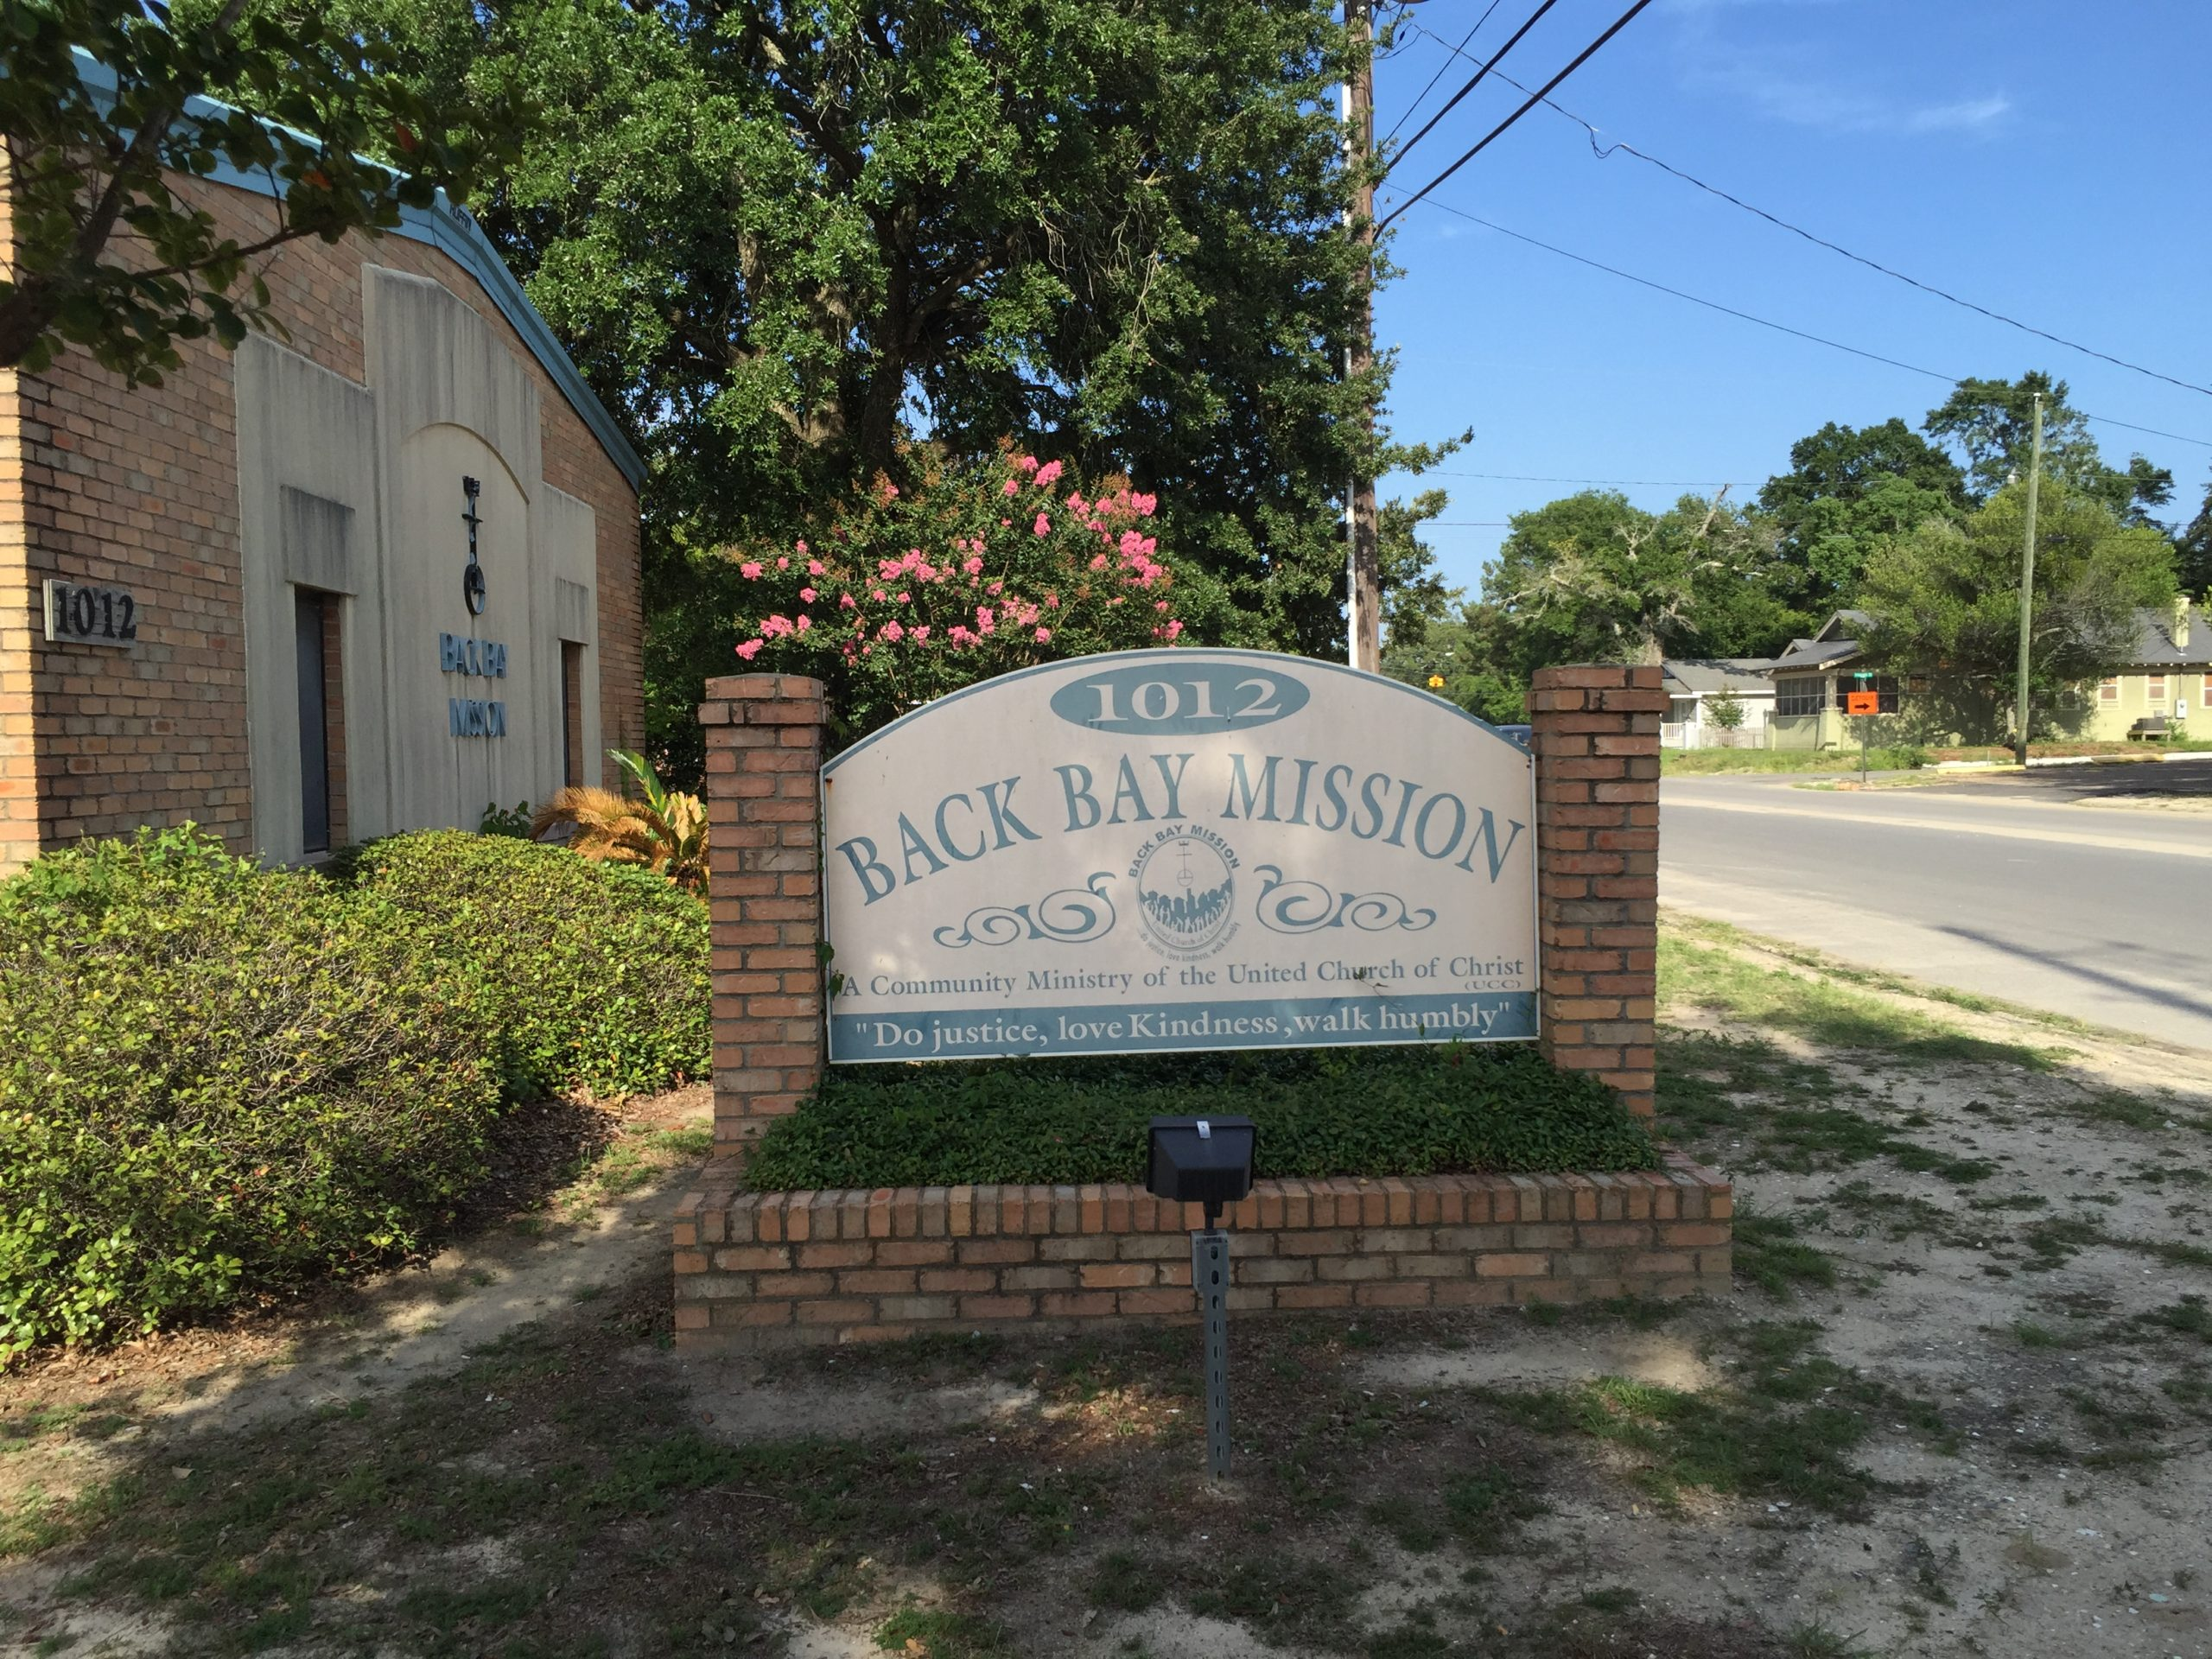 Back Bay Mission Closed until Monday, July 6